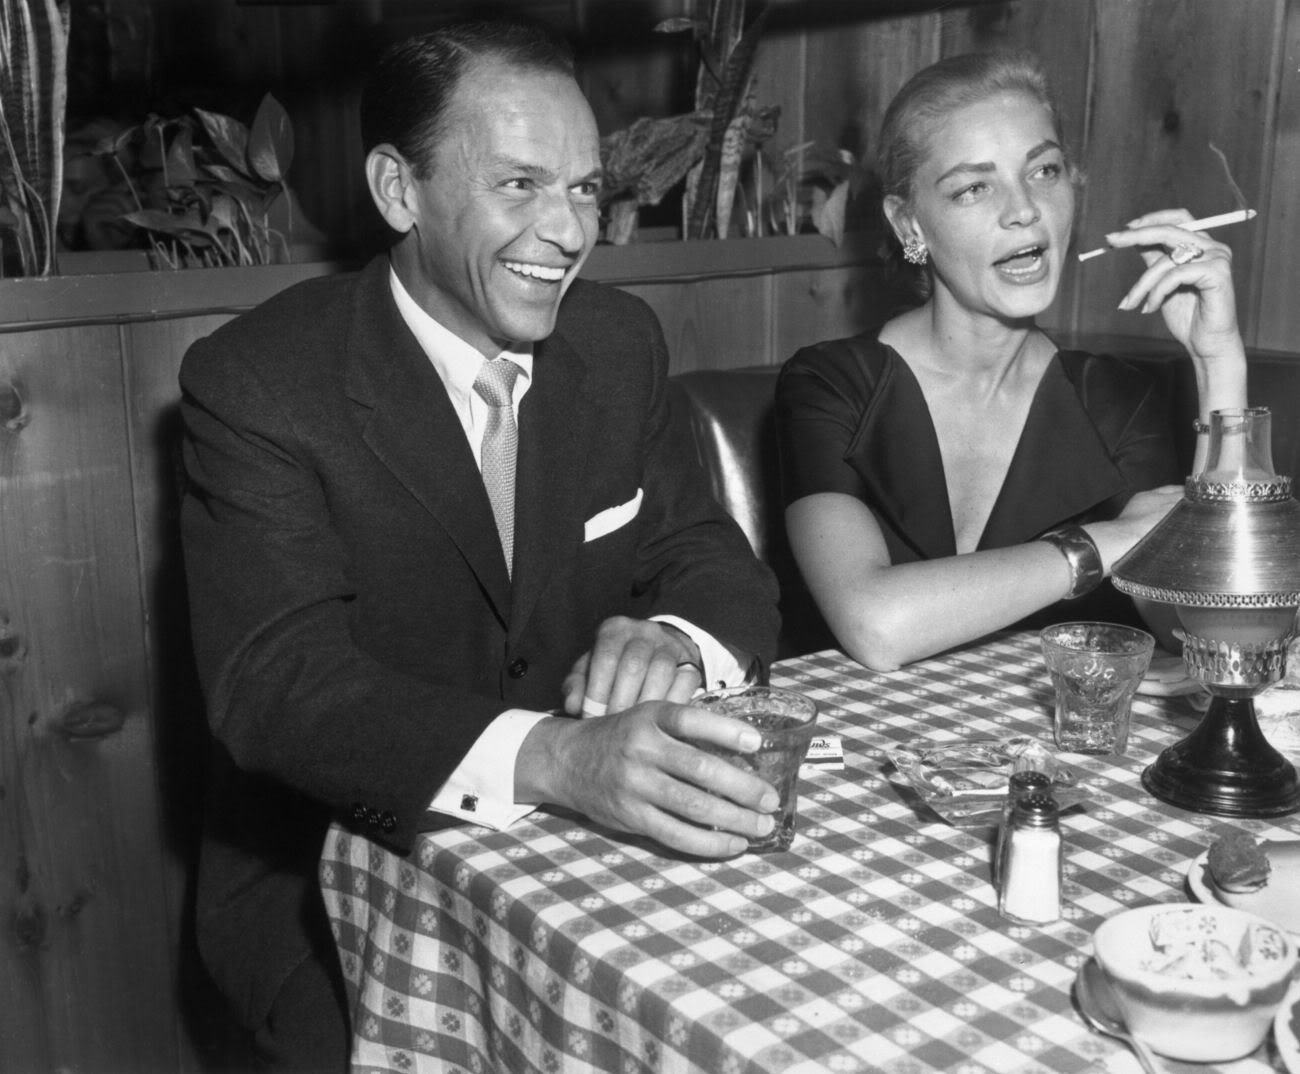 Singer and actor Frank Sinatra with actress Lauren Bacall at Musso and Frank, 1957